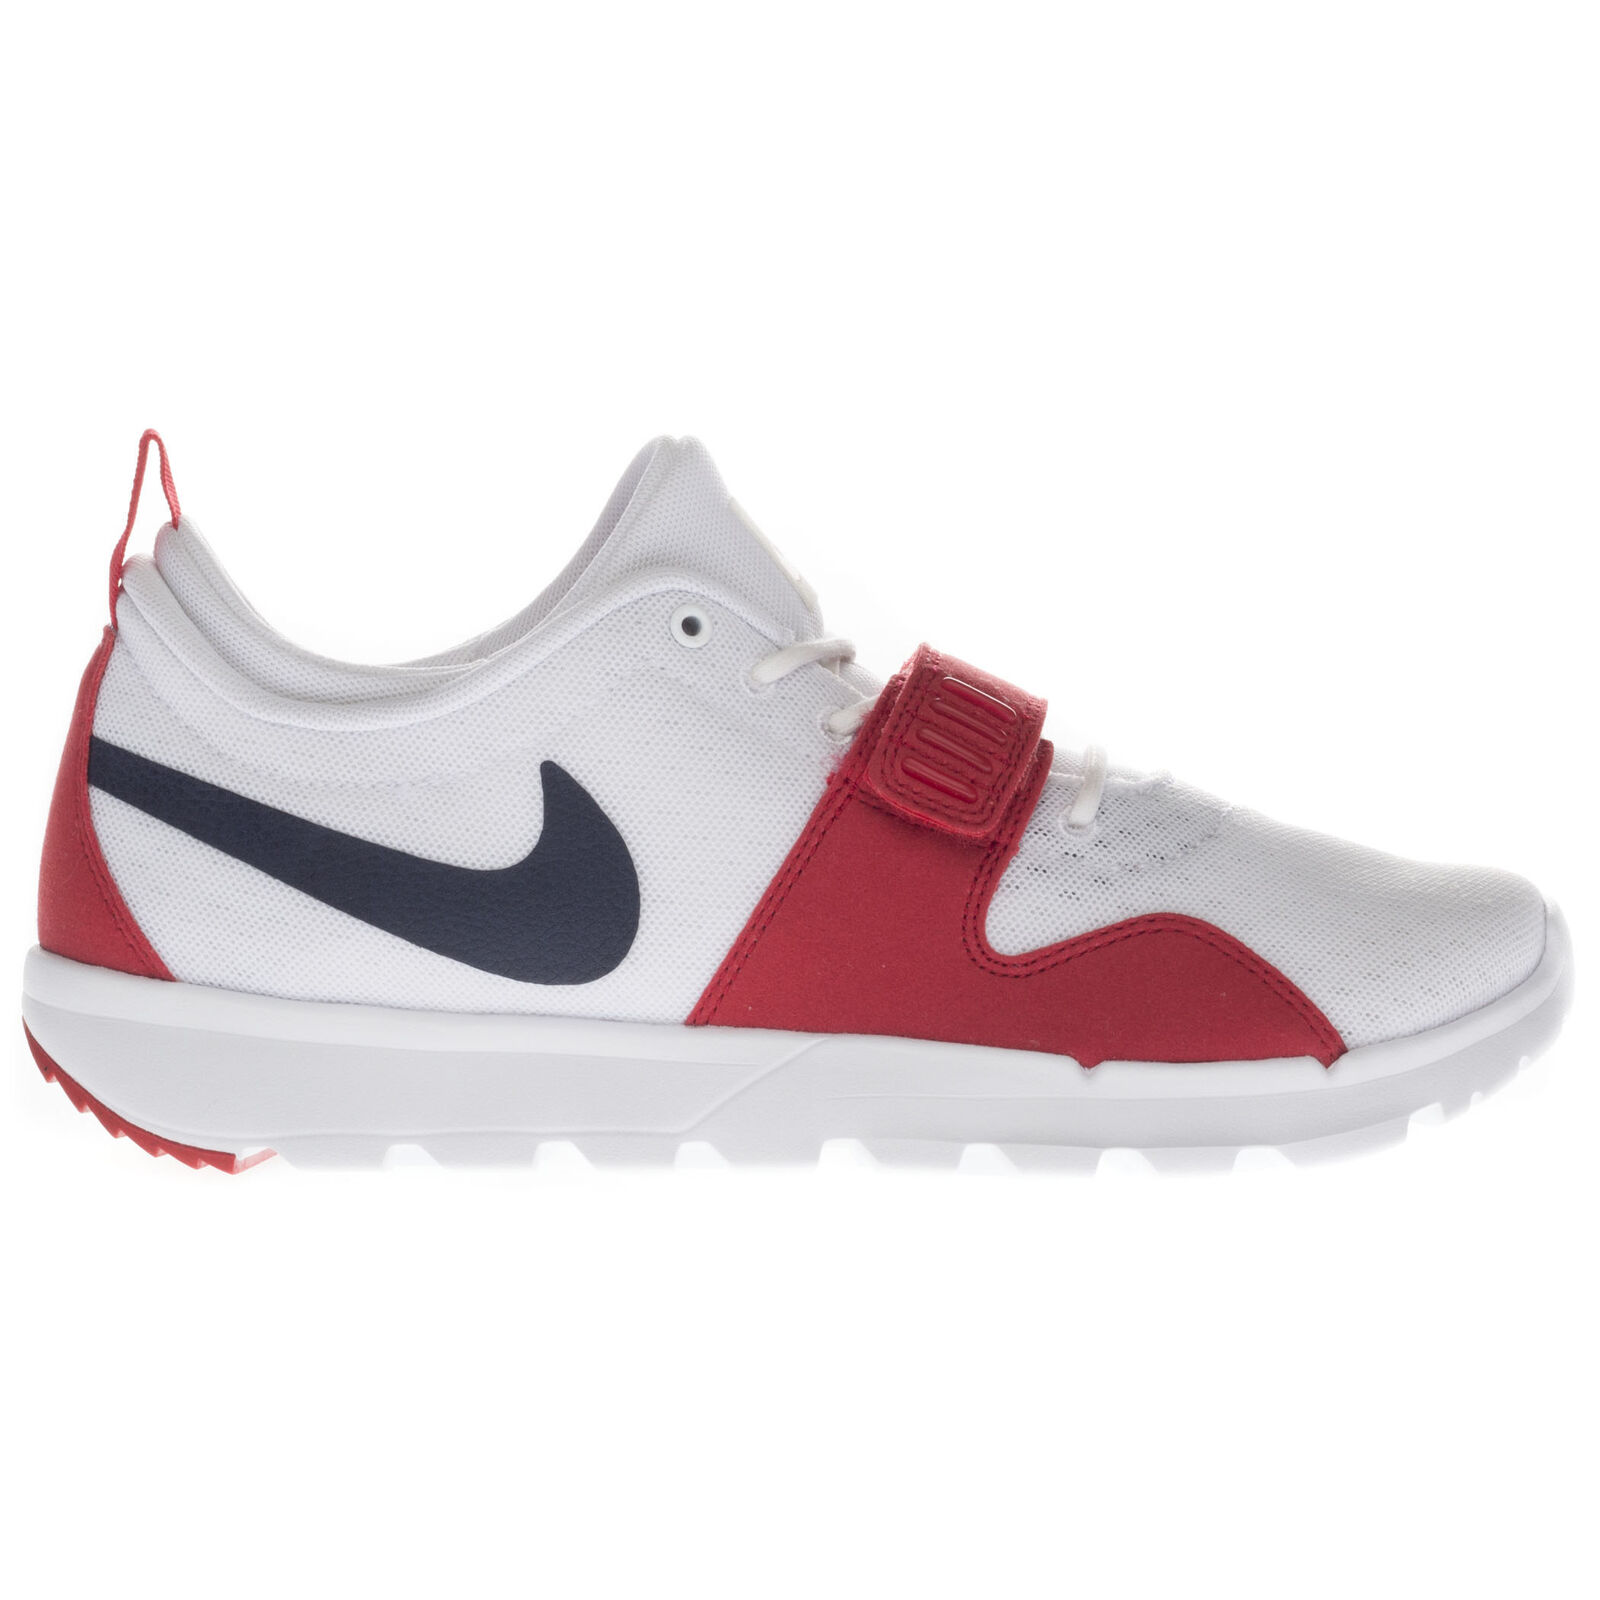 Nike Homme Trainerendor Low Top Lace Up Trainers With Strap and Rubber Sole Taille